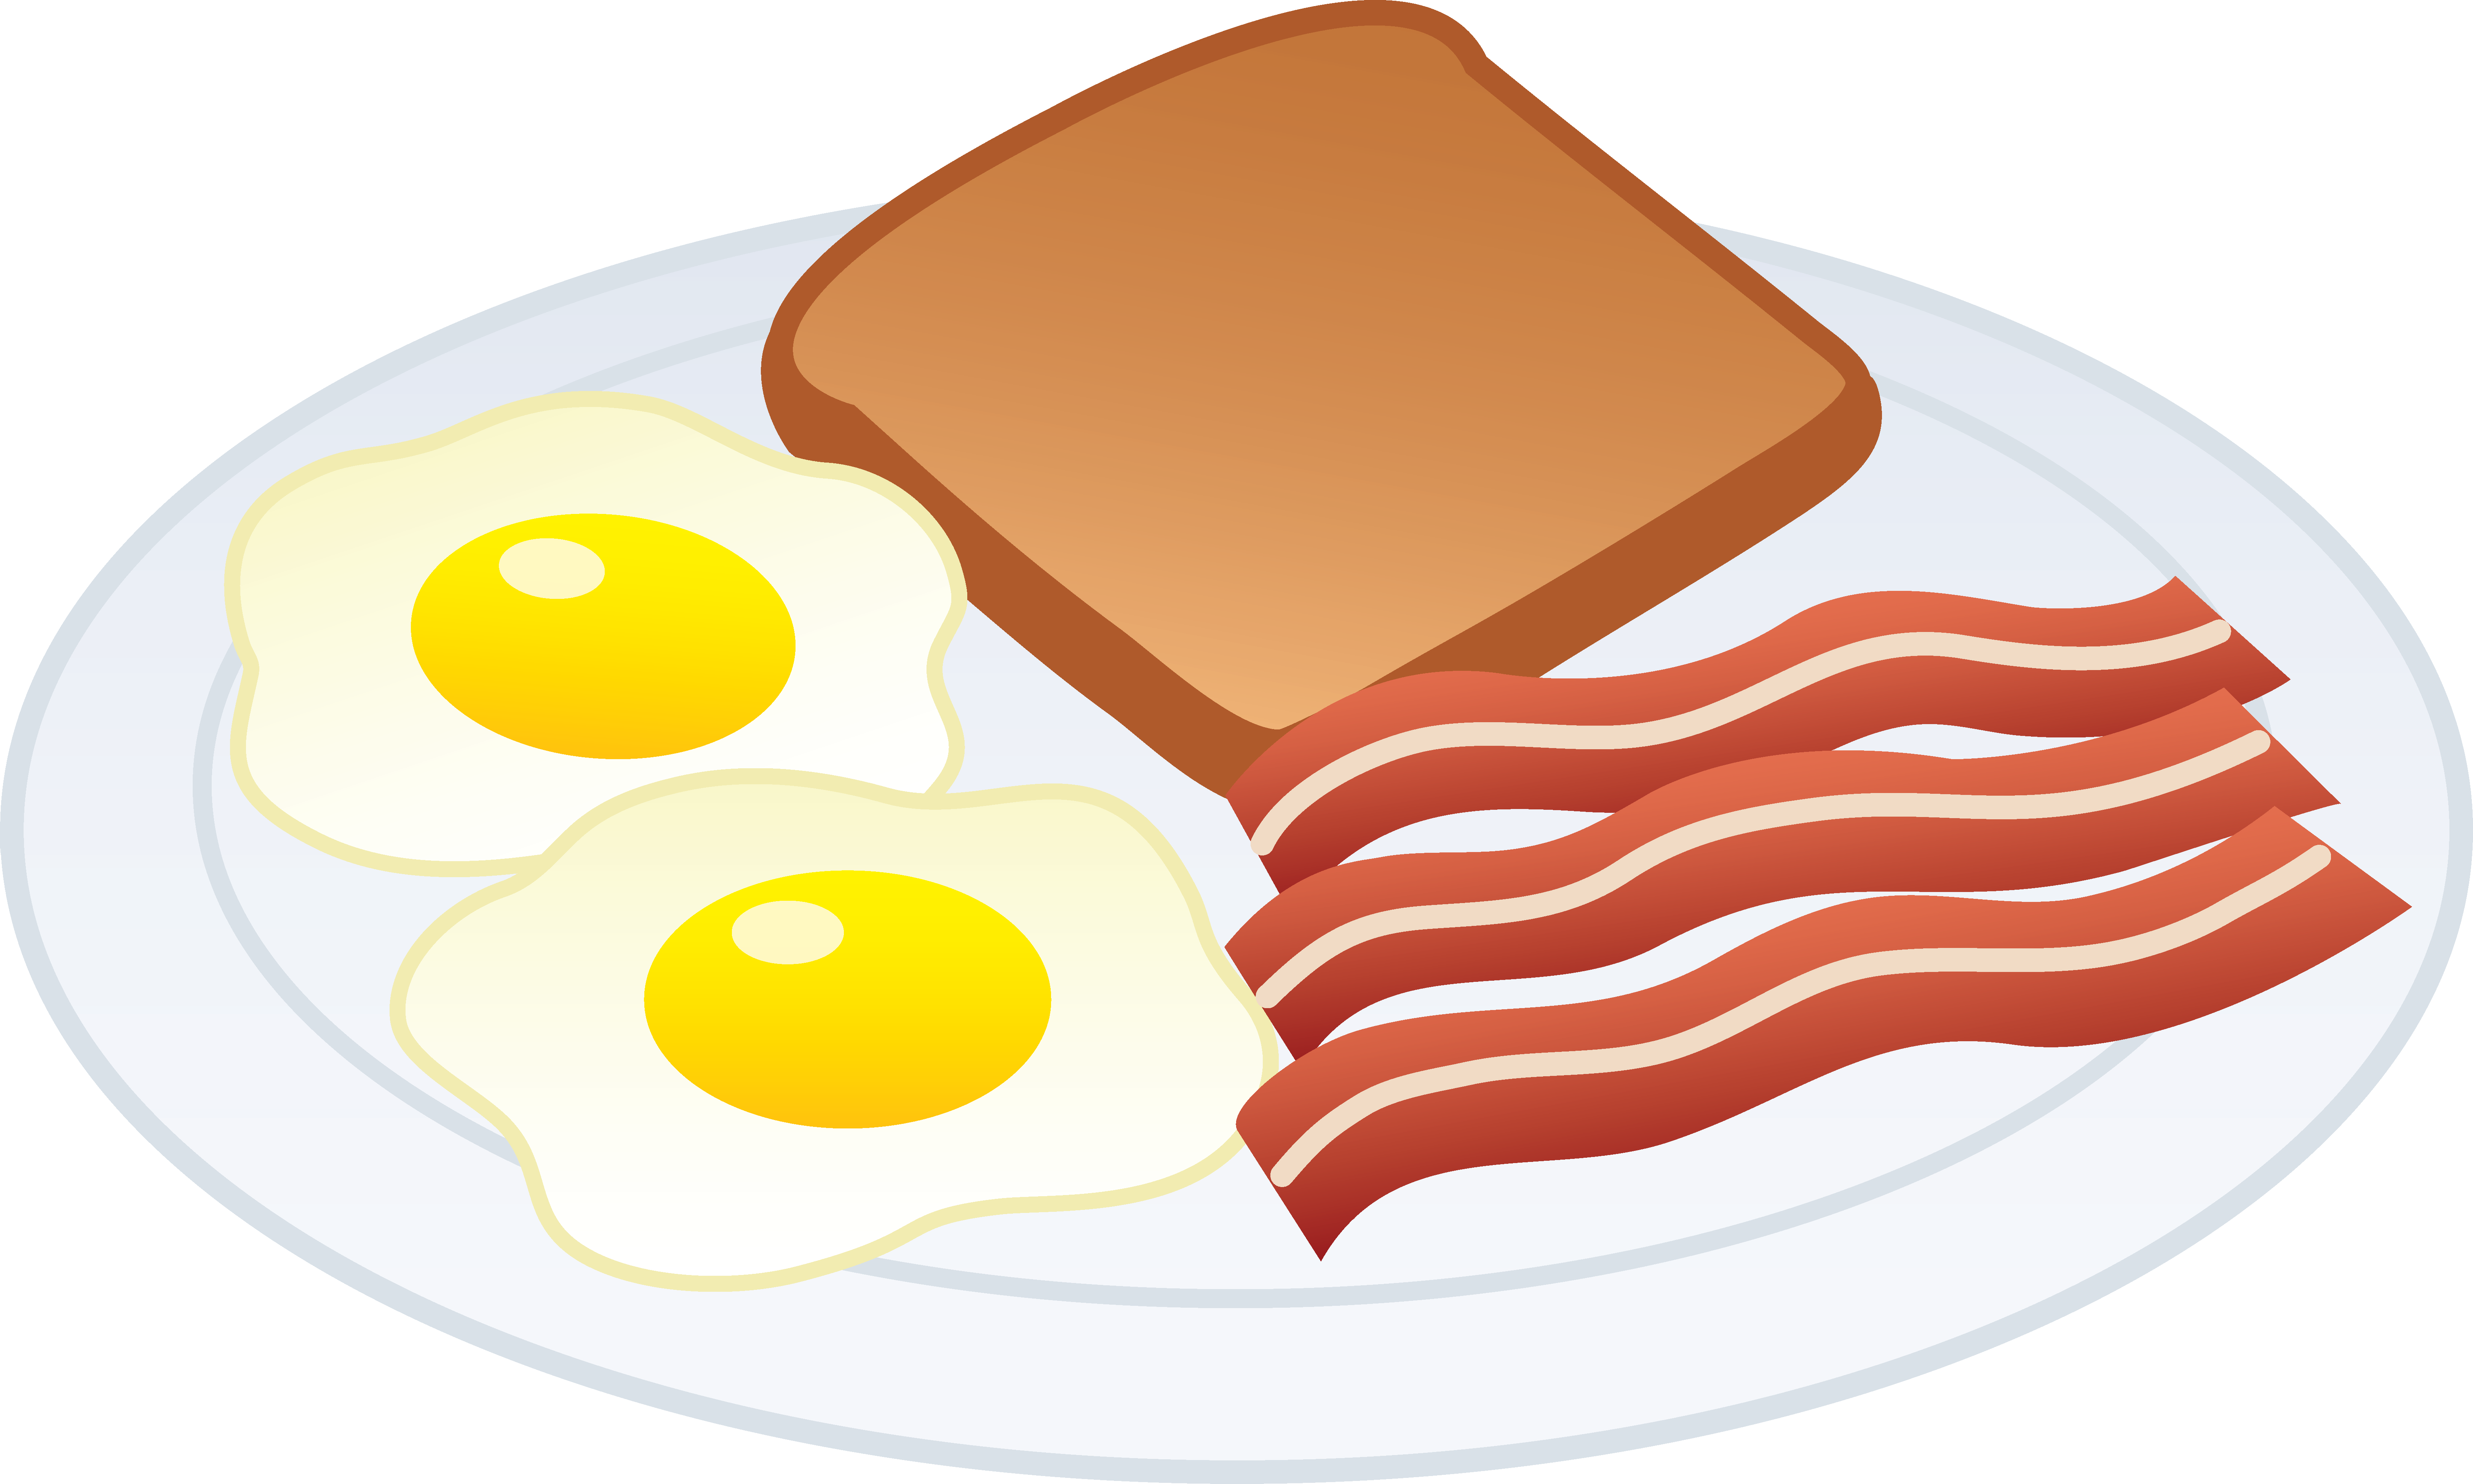 Reminder clipart breakfast. Clip art free of